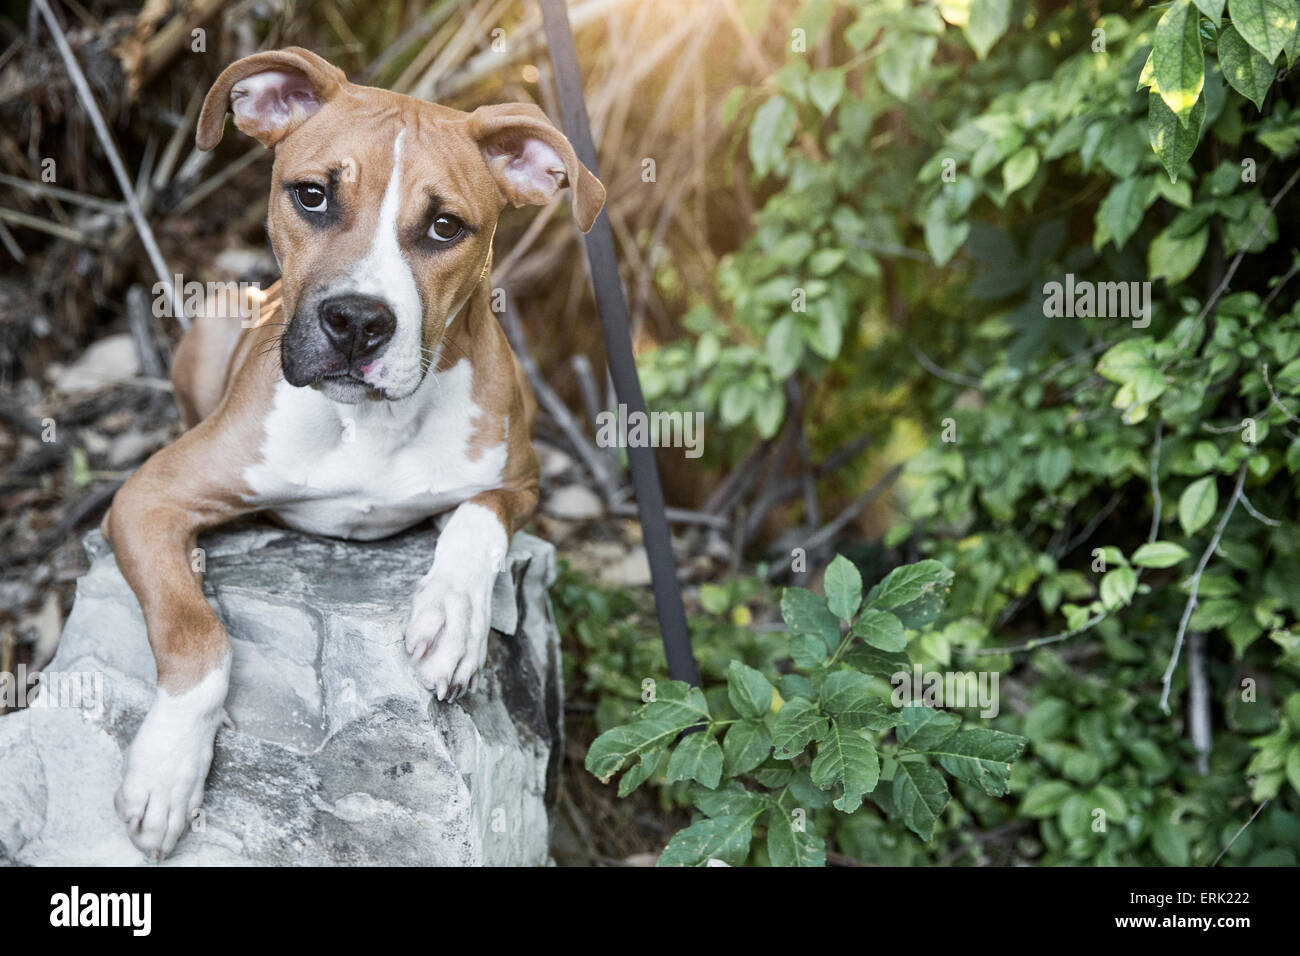 Portrait of light brown chiot blanc portant sur un rocher en scène riche de plantes vertes et de feuillage Photo Stock